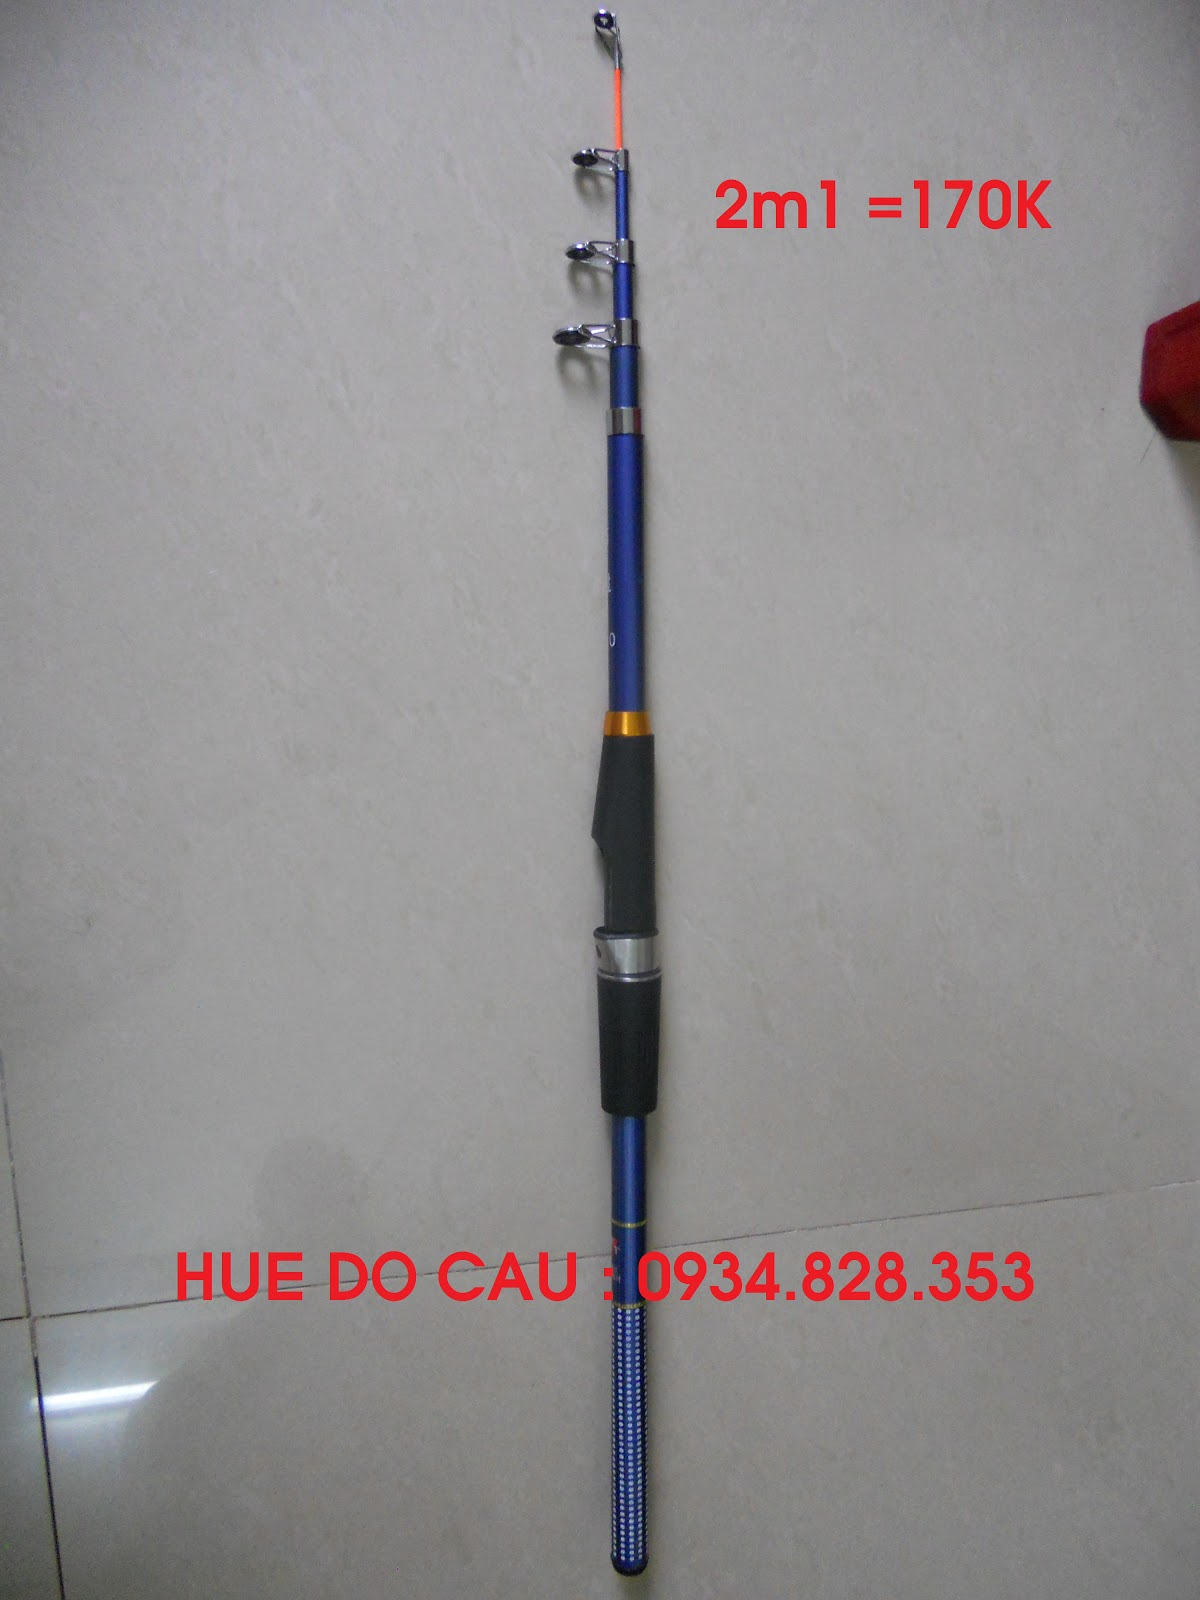 Gia Can Cau May http://thamhue.com.vn/showthread.php?17310-Chuyen-cac-mat-hang-do-Cau-CA-Can-Cau-May-Cau-Re-nhat-hue